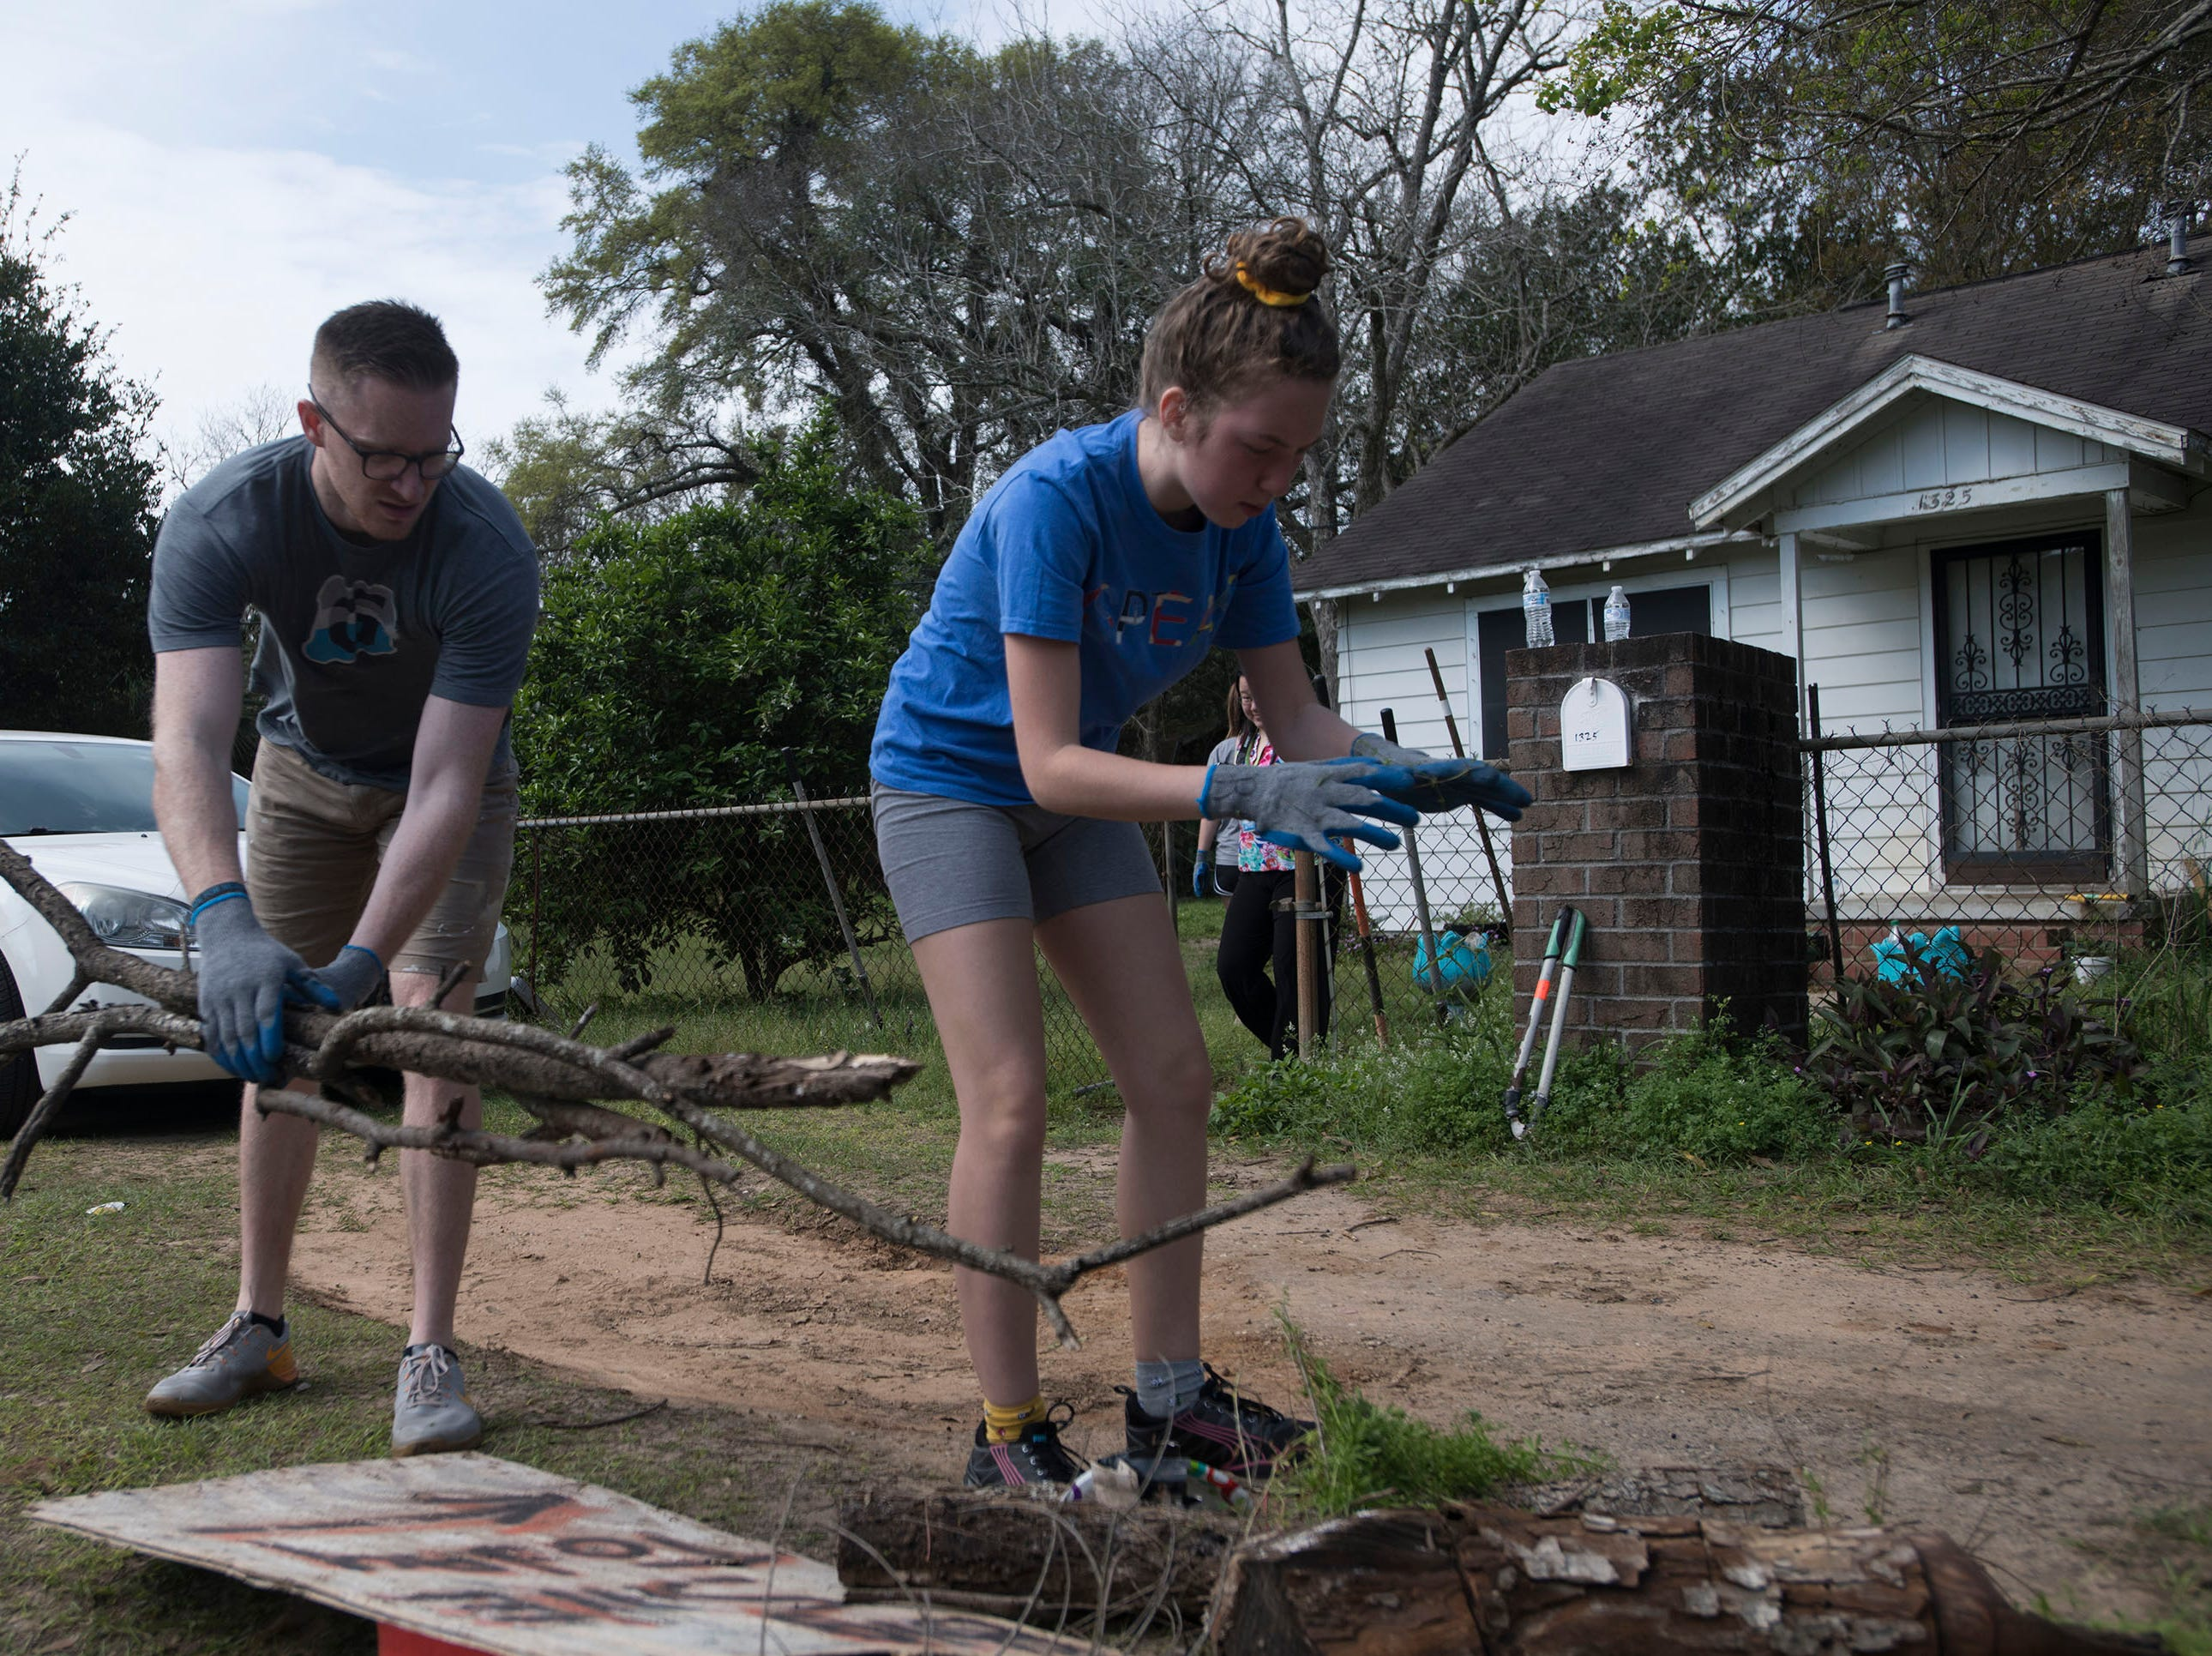 Bo Banner, and Susannah Kaufman, with the organization Call to Greatness, volunteer their time cleaning up the Brownsville area on Tuesday, March 12, 2019. The local Habitat for Humanity, Keep Pensacola Beautiful the City of Pensacola and Escambia County joined forces to help revitalize the Brownsville neighborhood during the inaugural Rock the Block event.